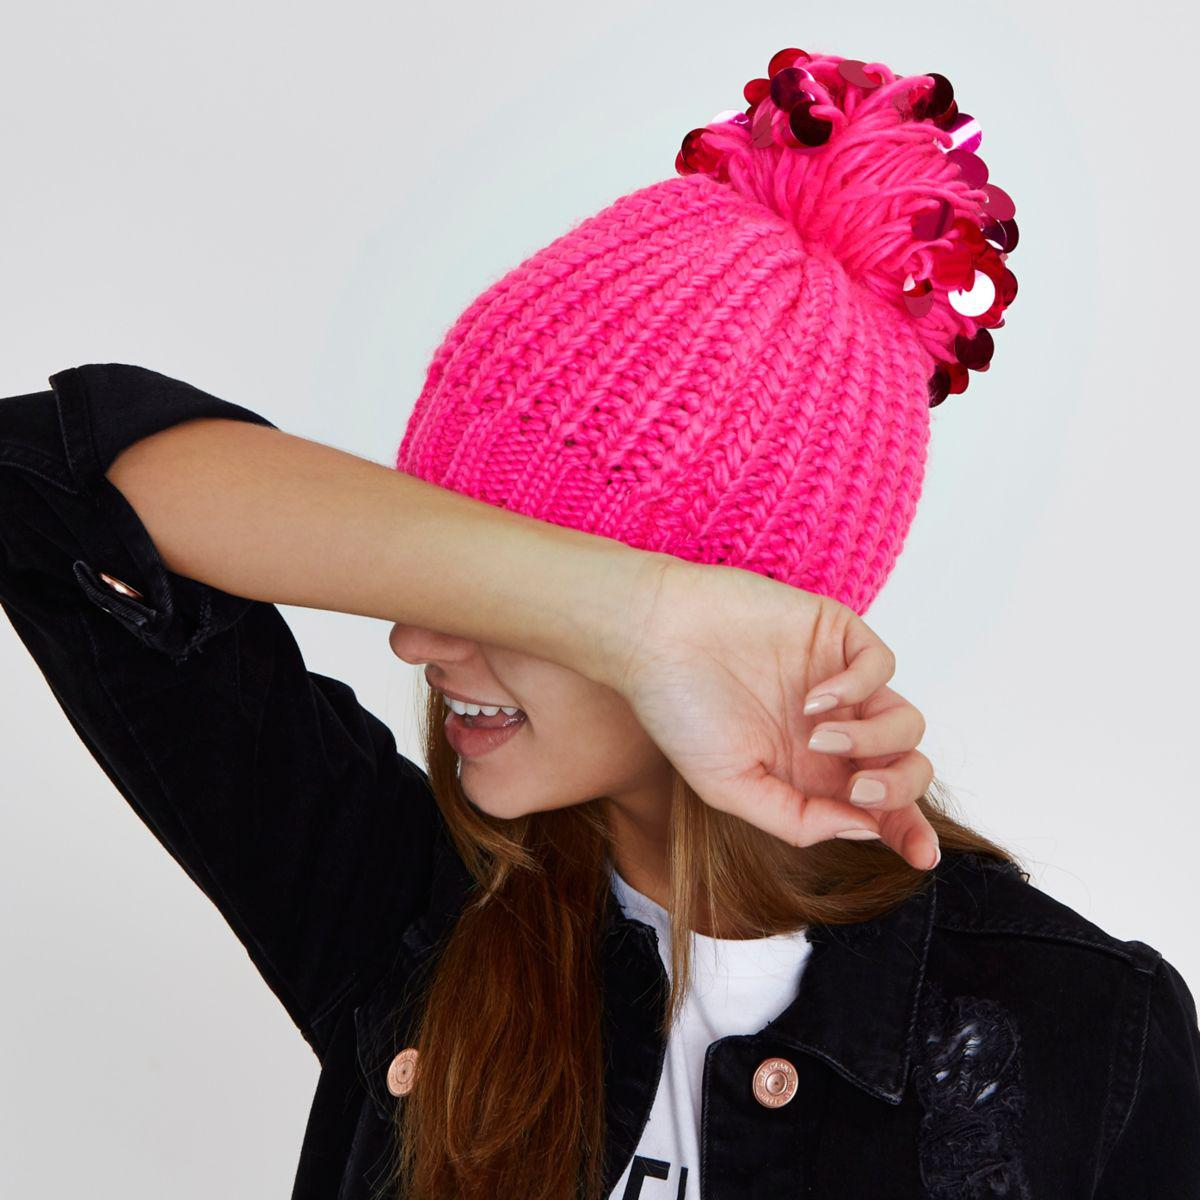 Lyst - River Island Bright Pink Sequin Pom Pom Beanie Hat in Pink 714905343a